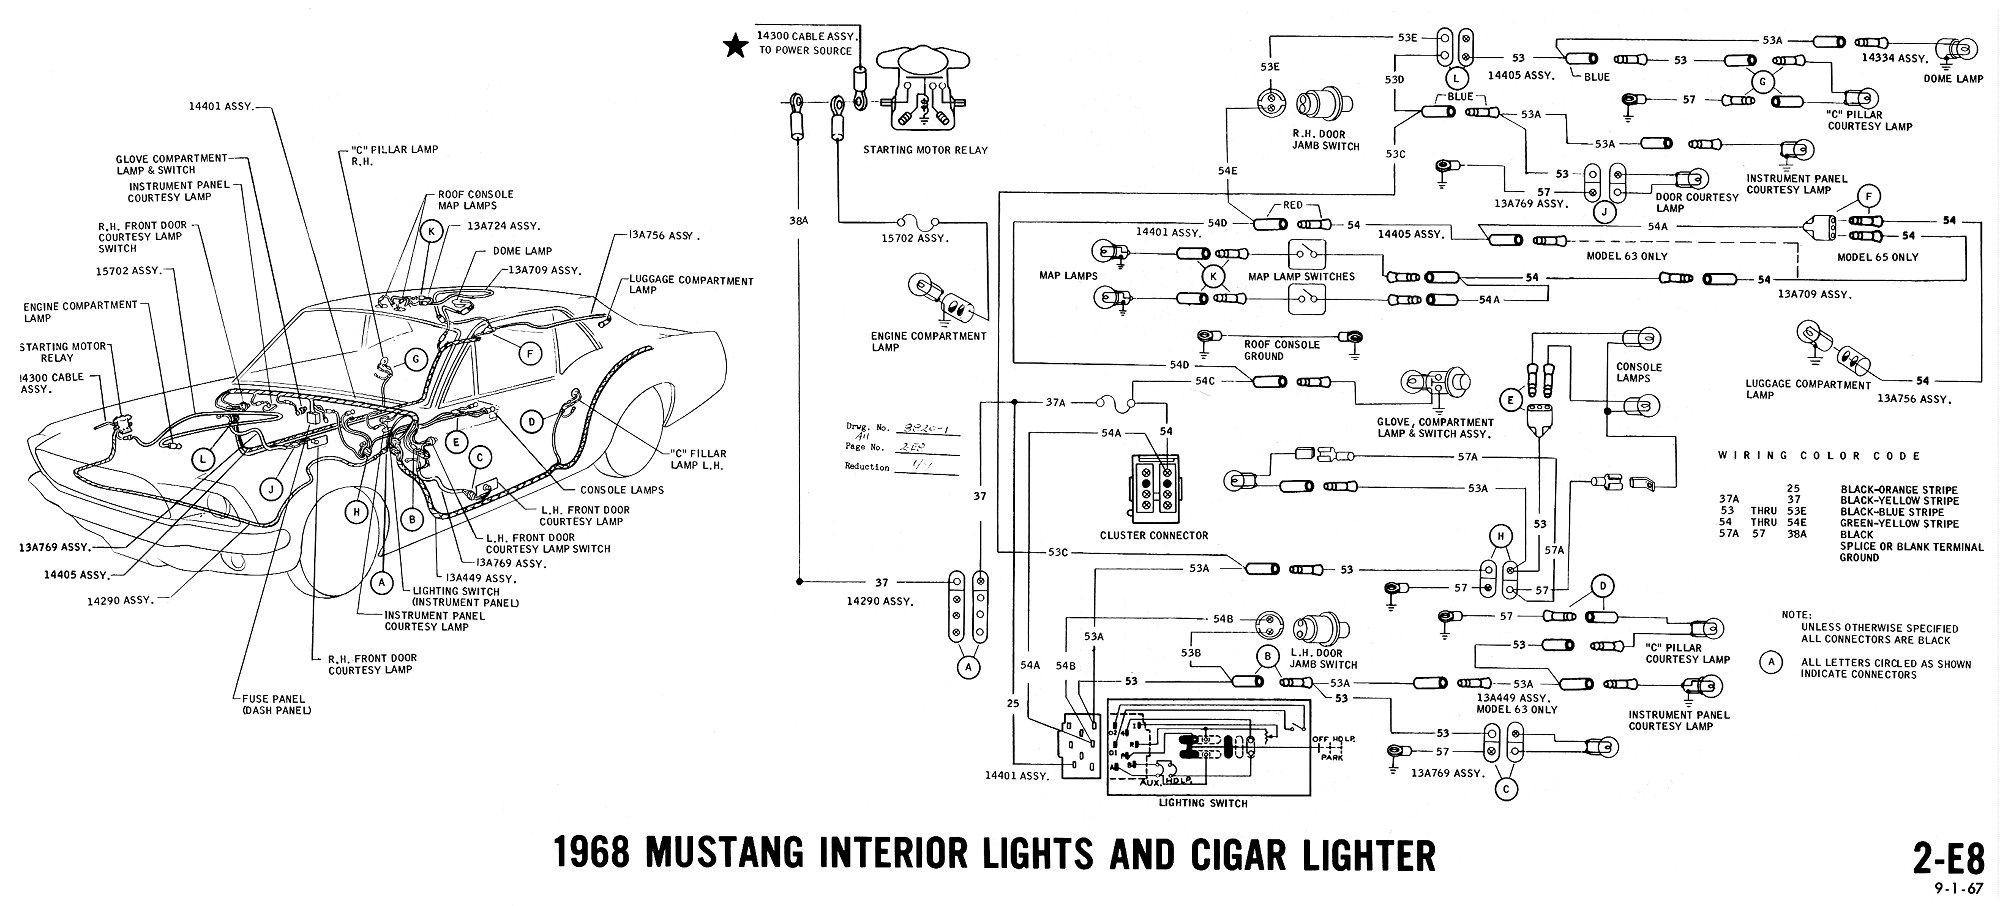 1968 Mustang Wiring Diagrams on 06 Mustang Fuse Box Diagram